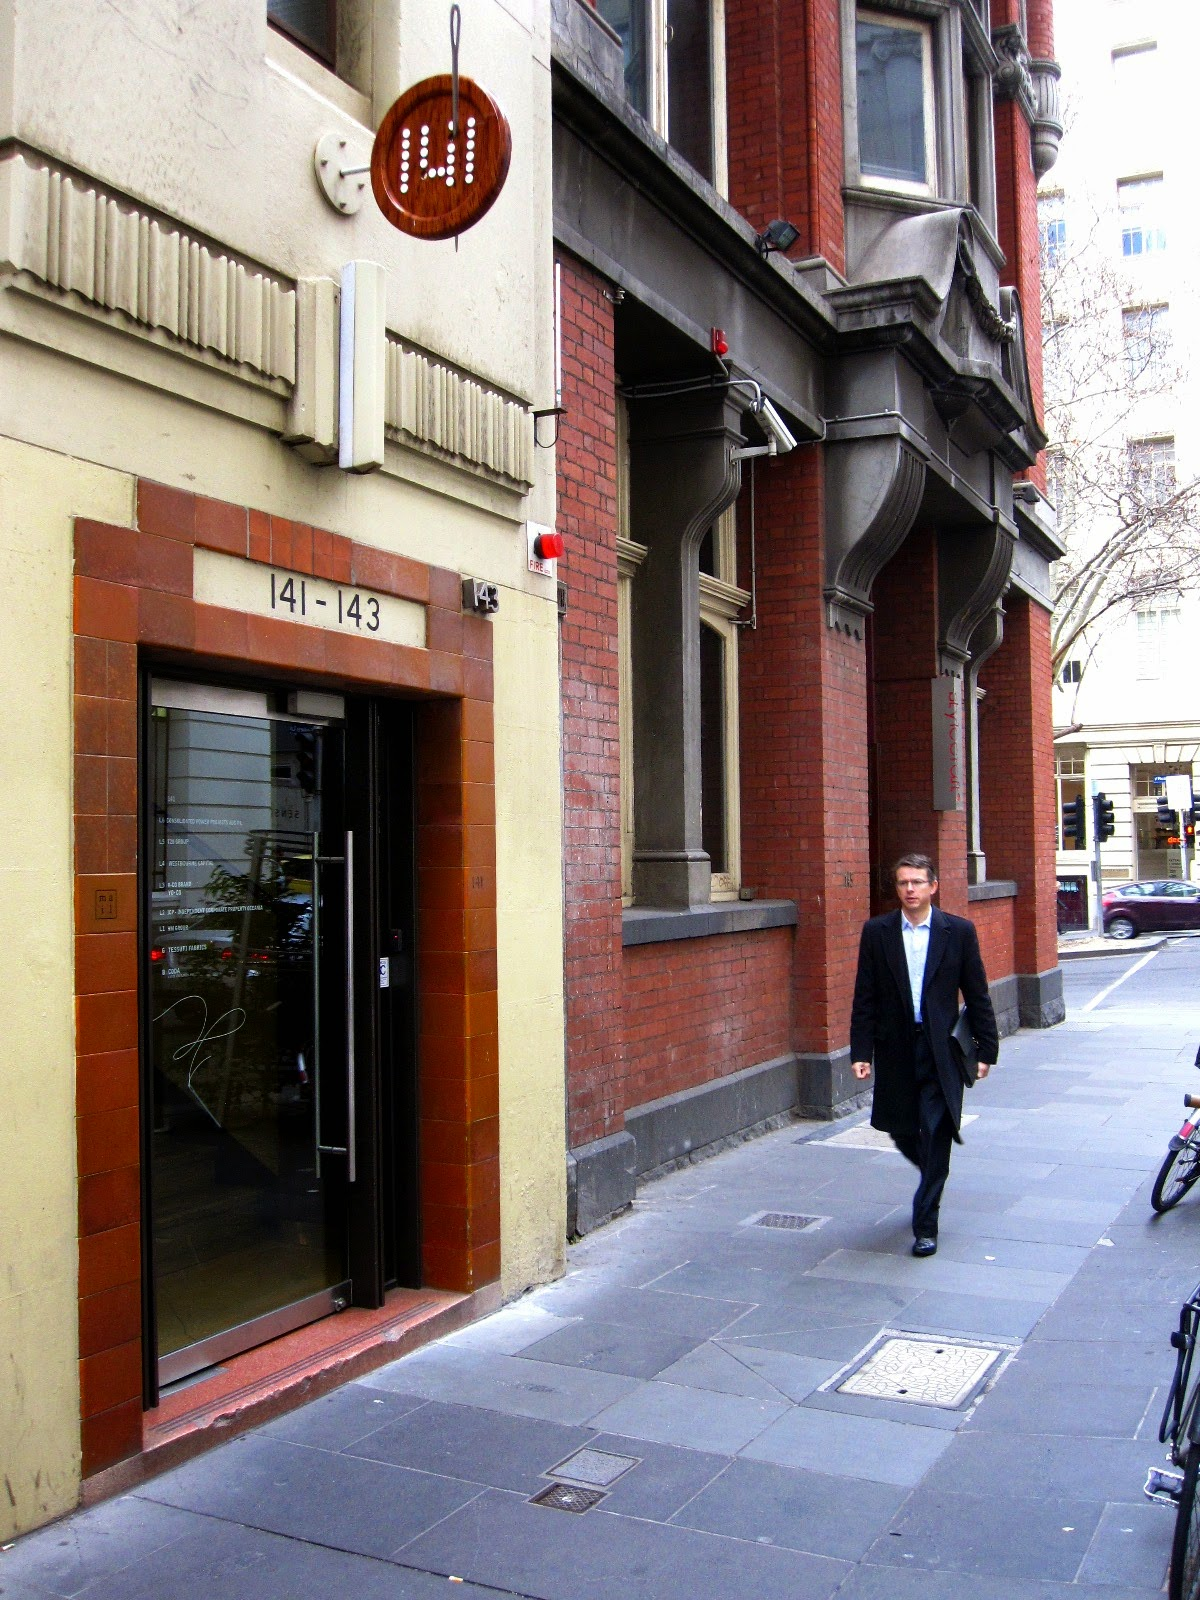 Front entrance of 141 Flinders Lane in Melbourne.